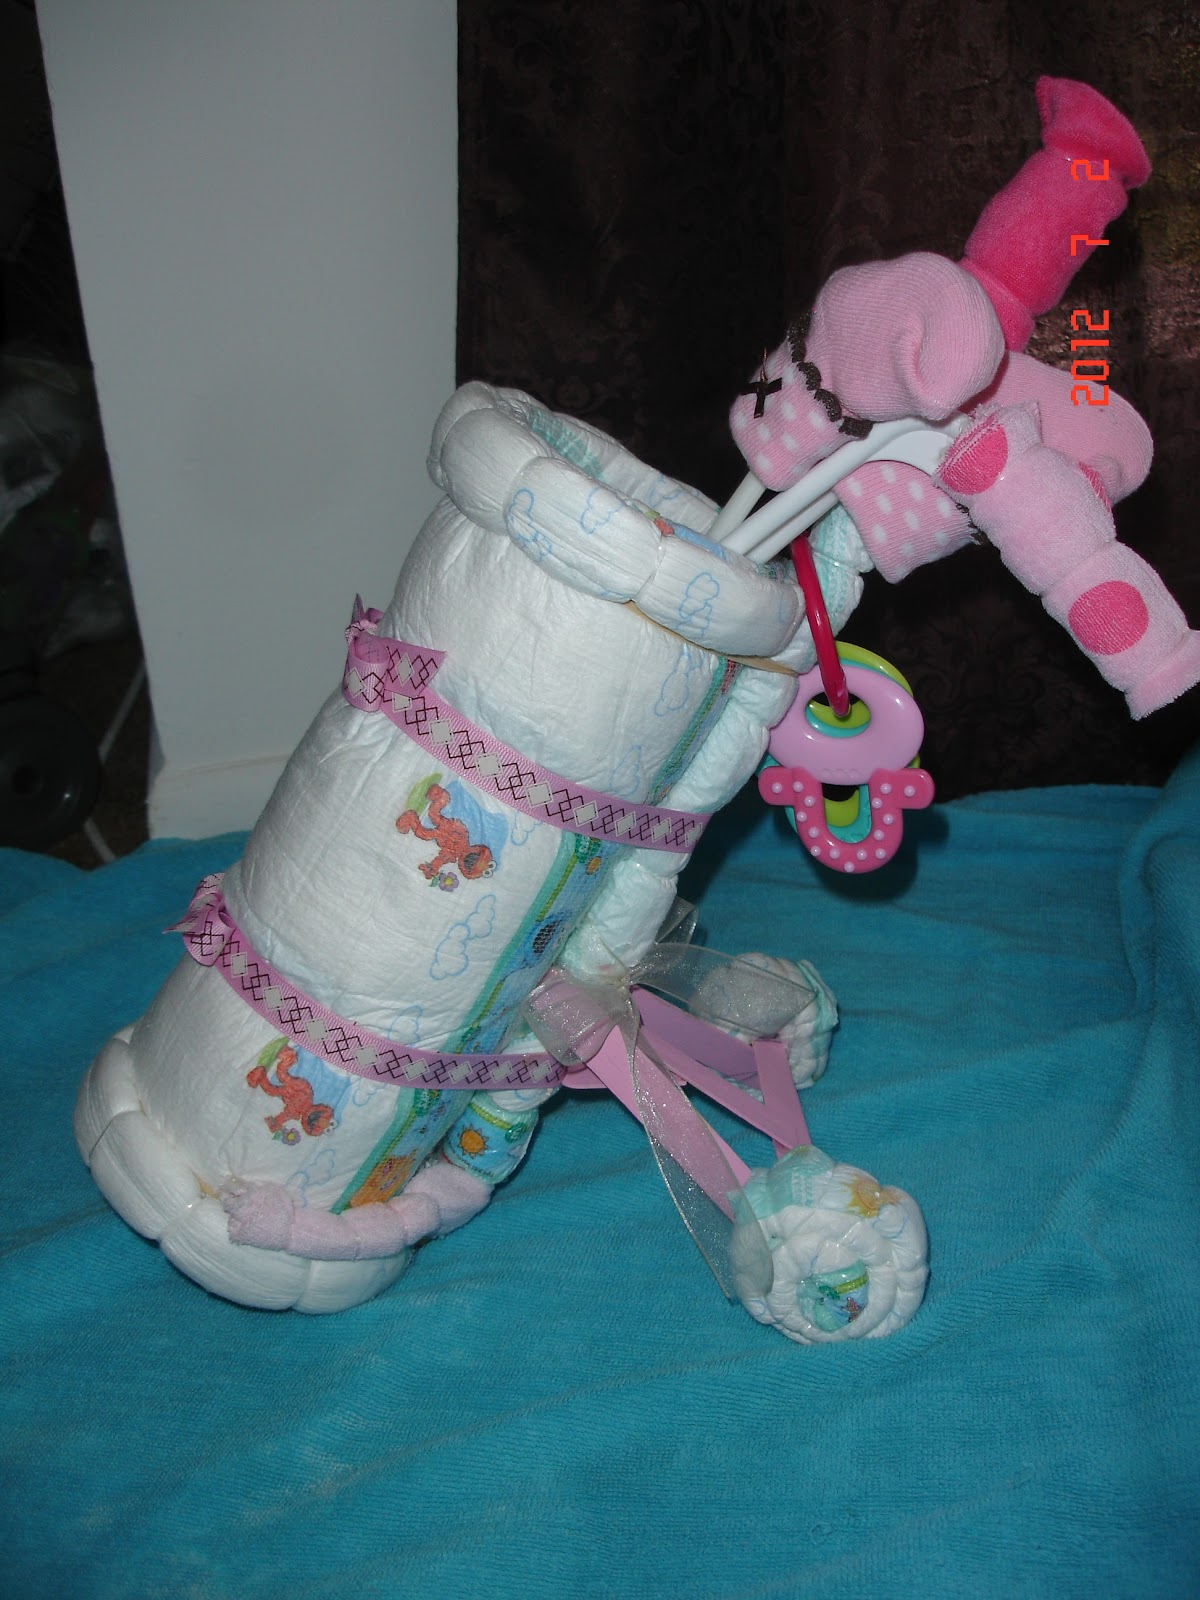 Cake Decorating Bag Instructions : How To Make A Tractor From Diapers Ehow Party ...